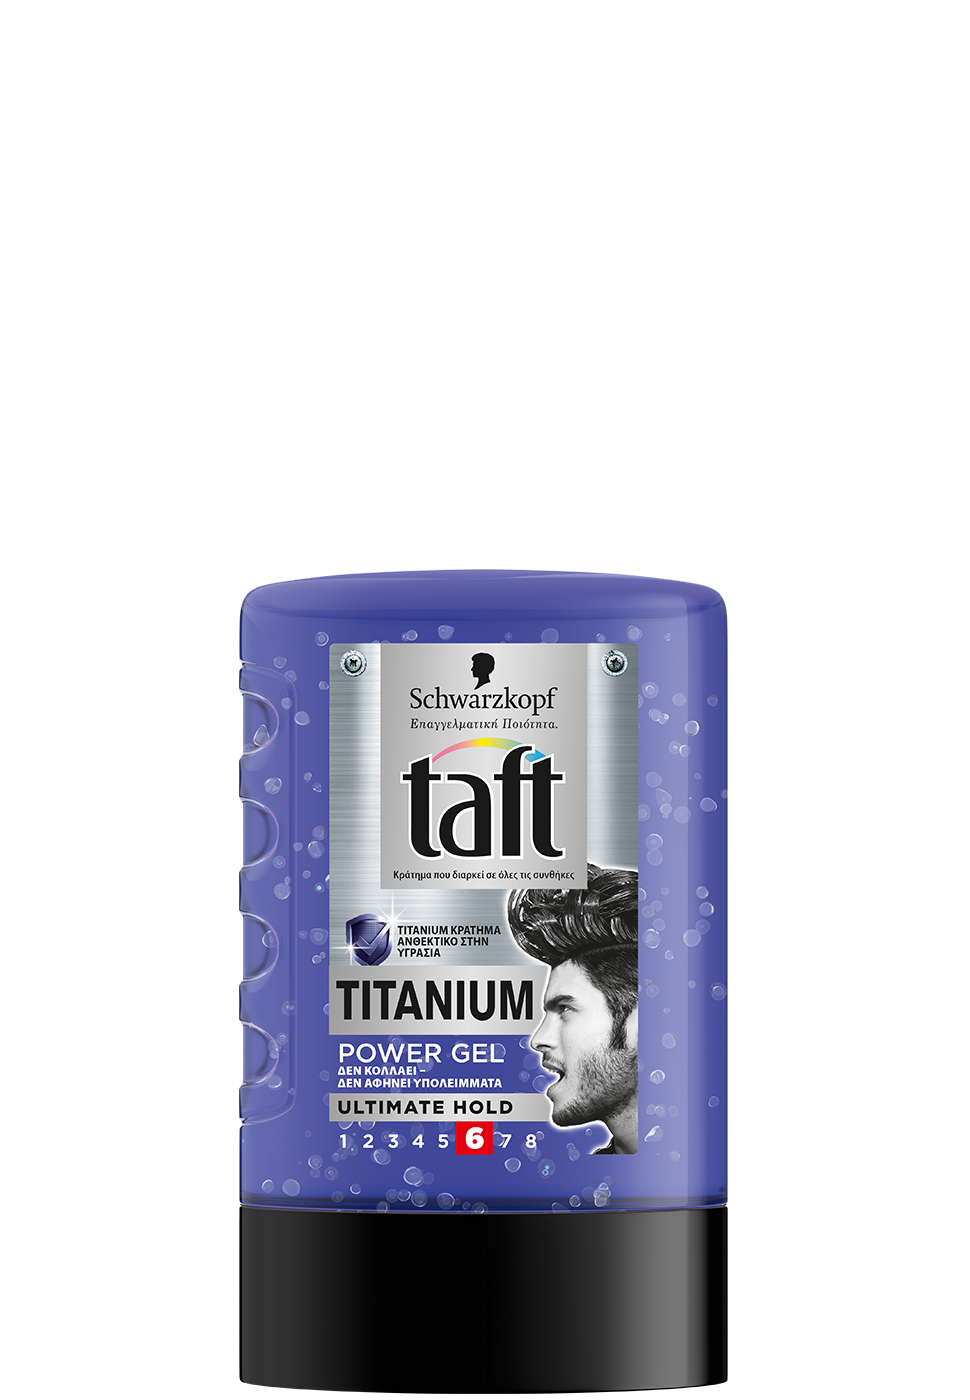 titanium_power_gel_2_gr_970-1400